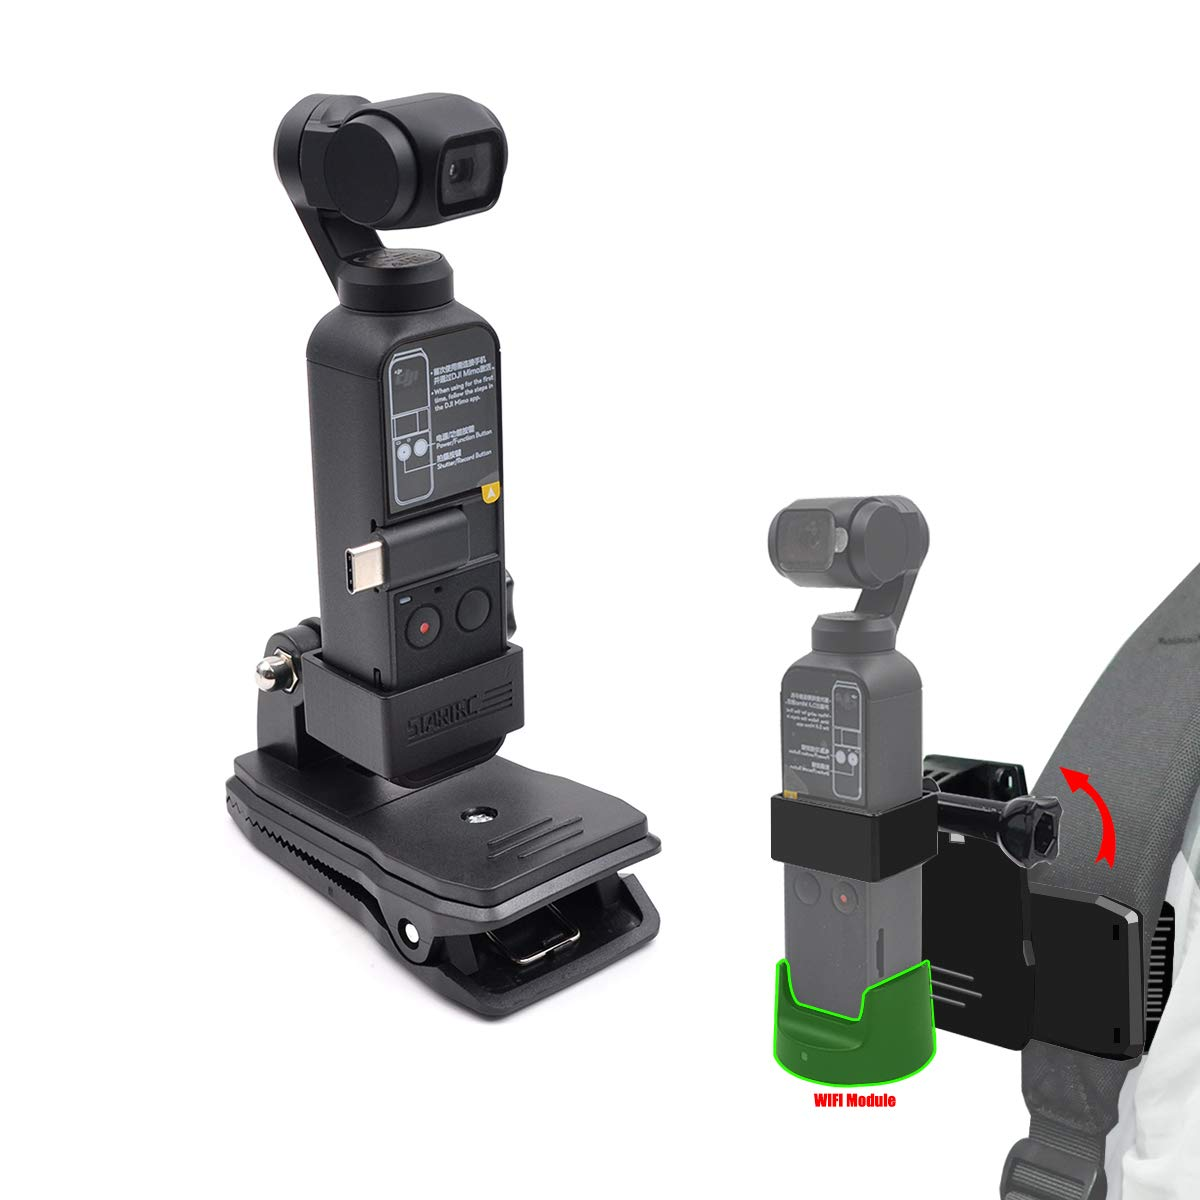 STARTRC Osmo Pocket Mount Tripod Backpack Clip For DJI OSMO Pocket Accessories Compatible OSMO Pocket Wireless Module